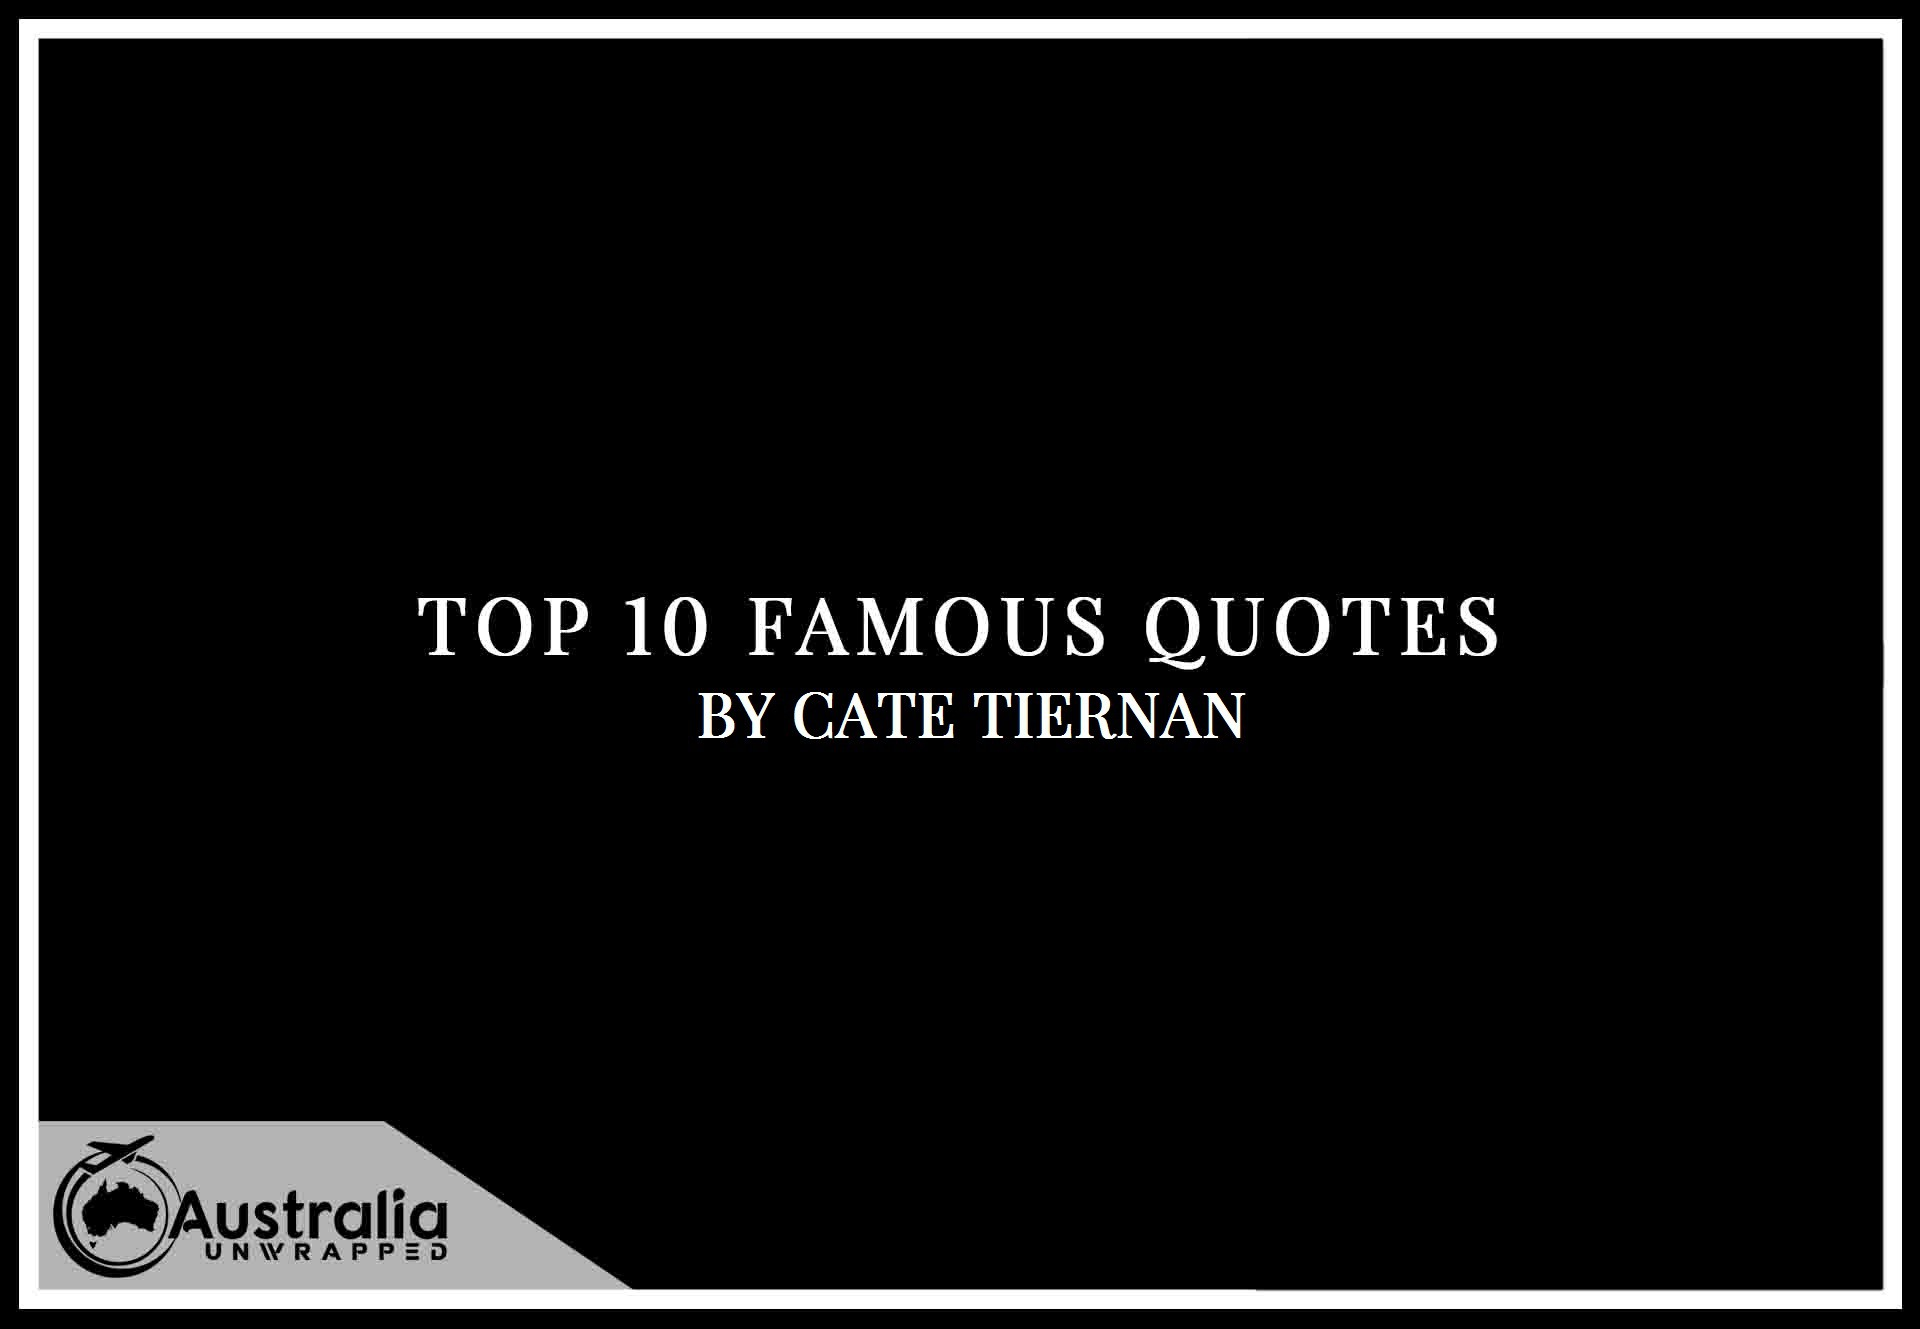 Cate Tiernan's Top 10 Popular and Famous Quotes